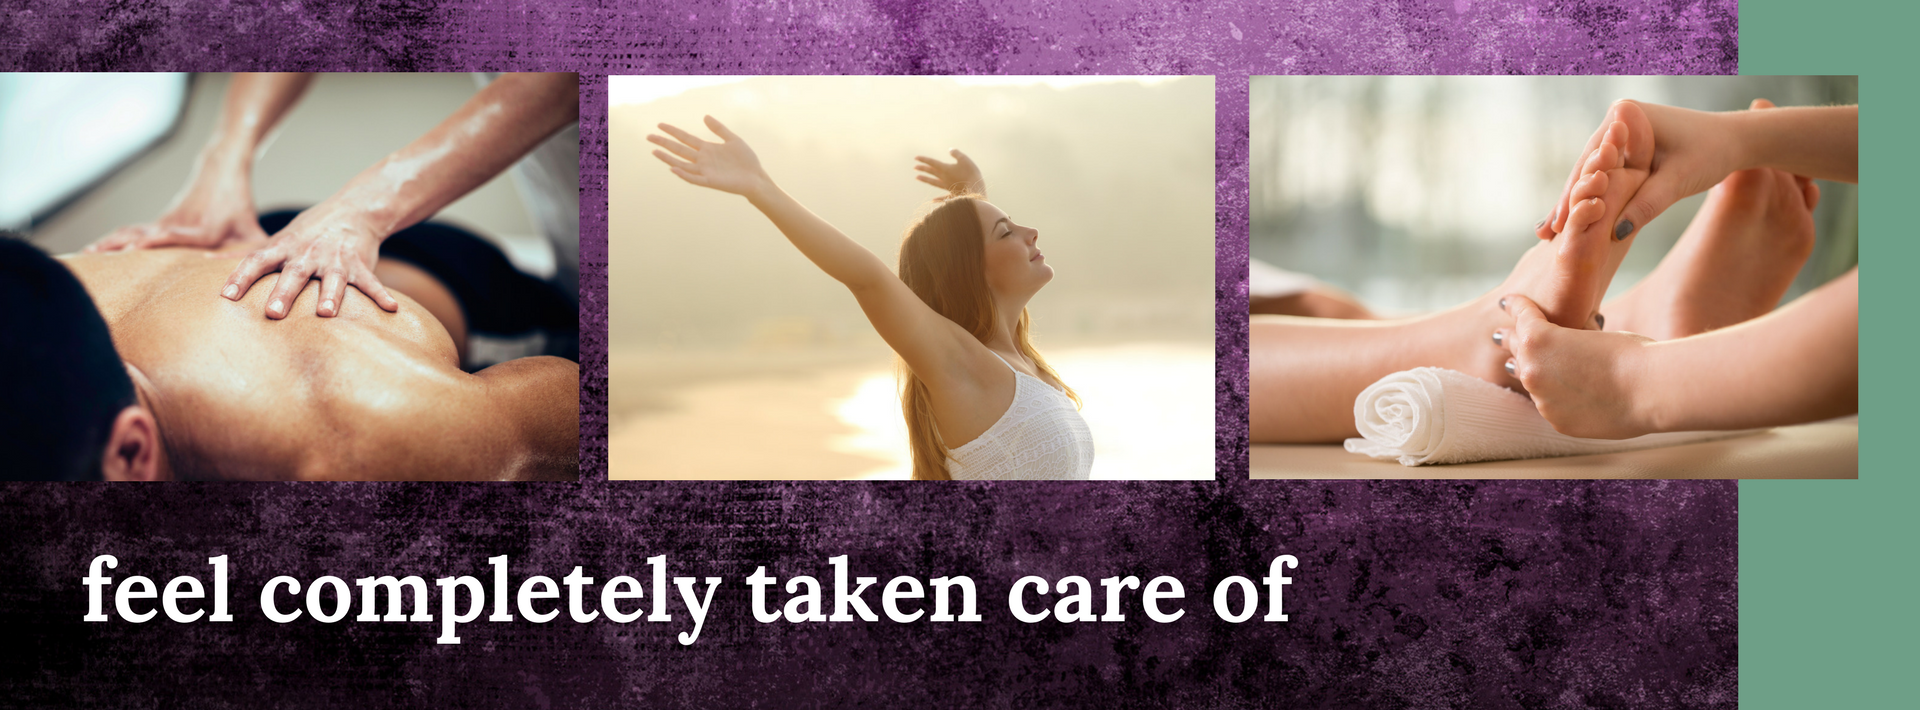 moondance website banner multi + bunbury massage therapy reflexology